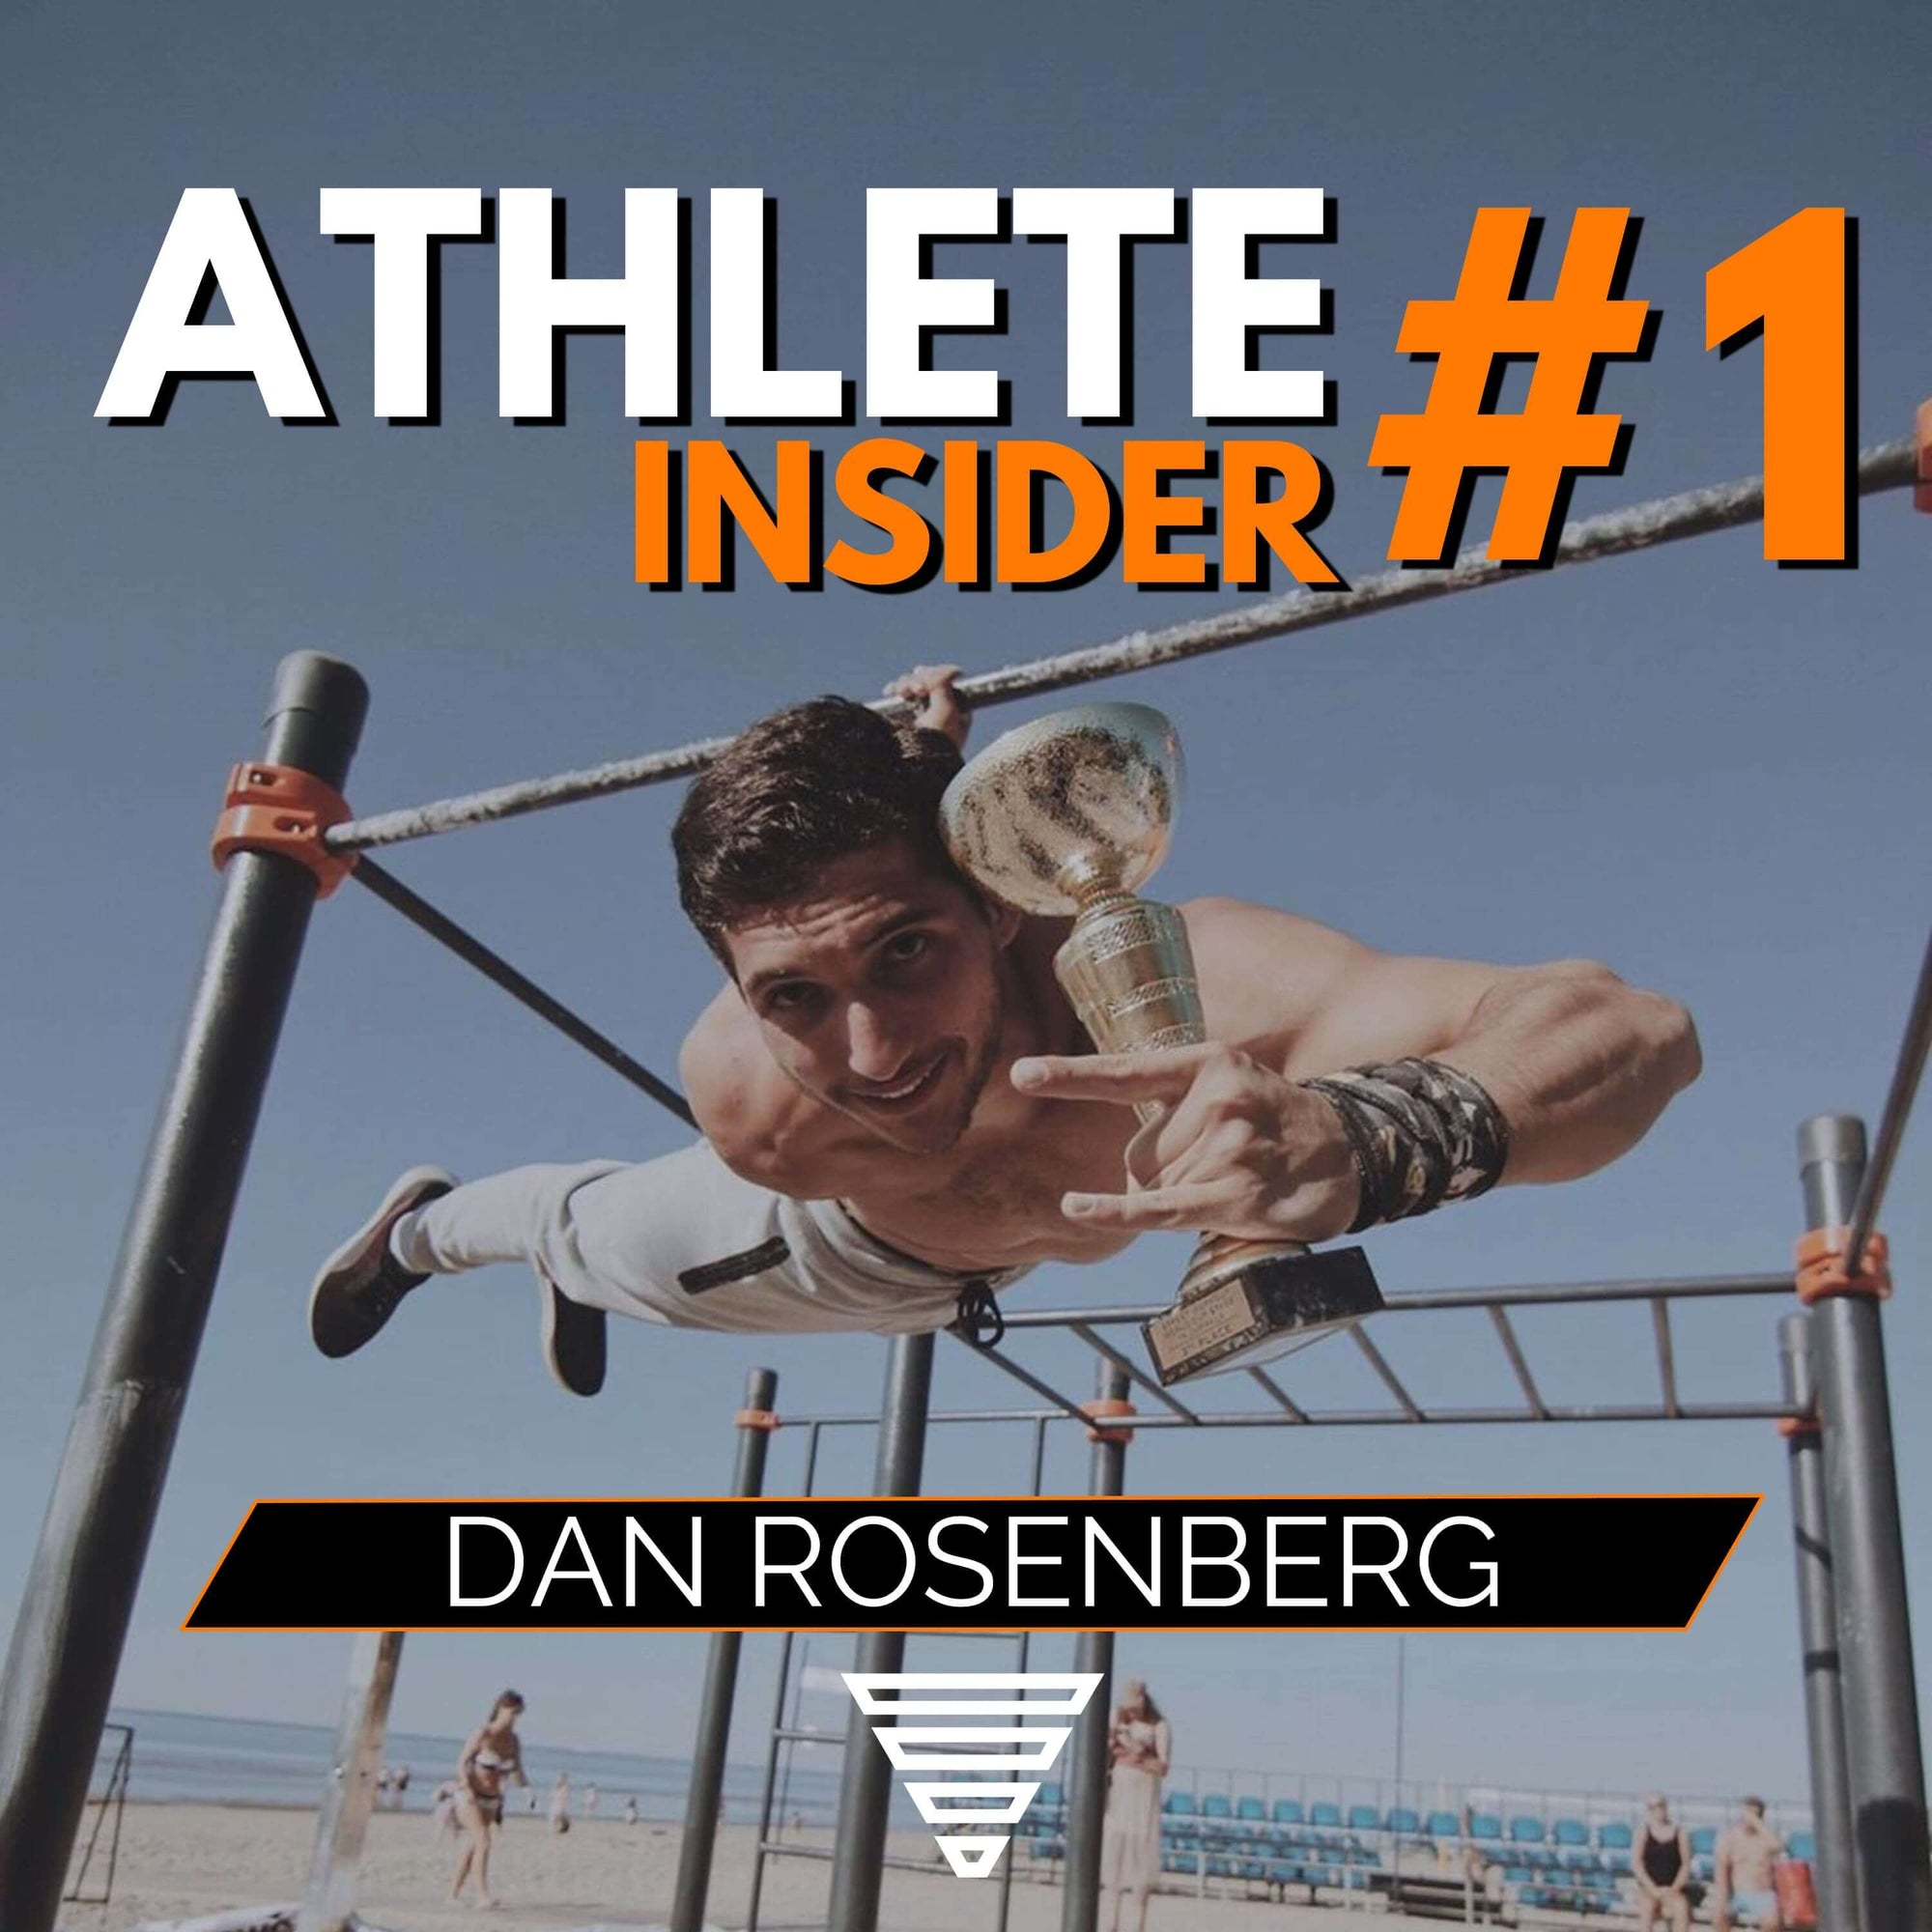 Inside Dan Rosenberg's mind - Interview with the professional calisthenics athlete from Israel - The Athlete Insider Podcast